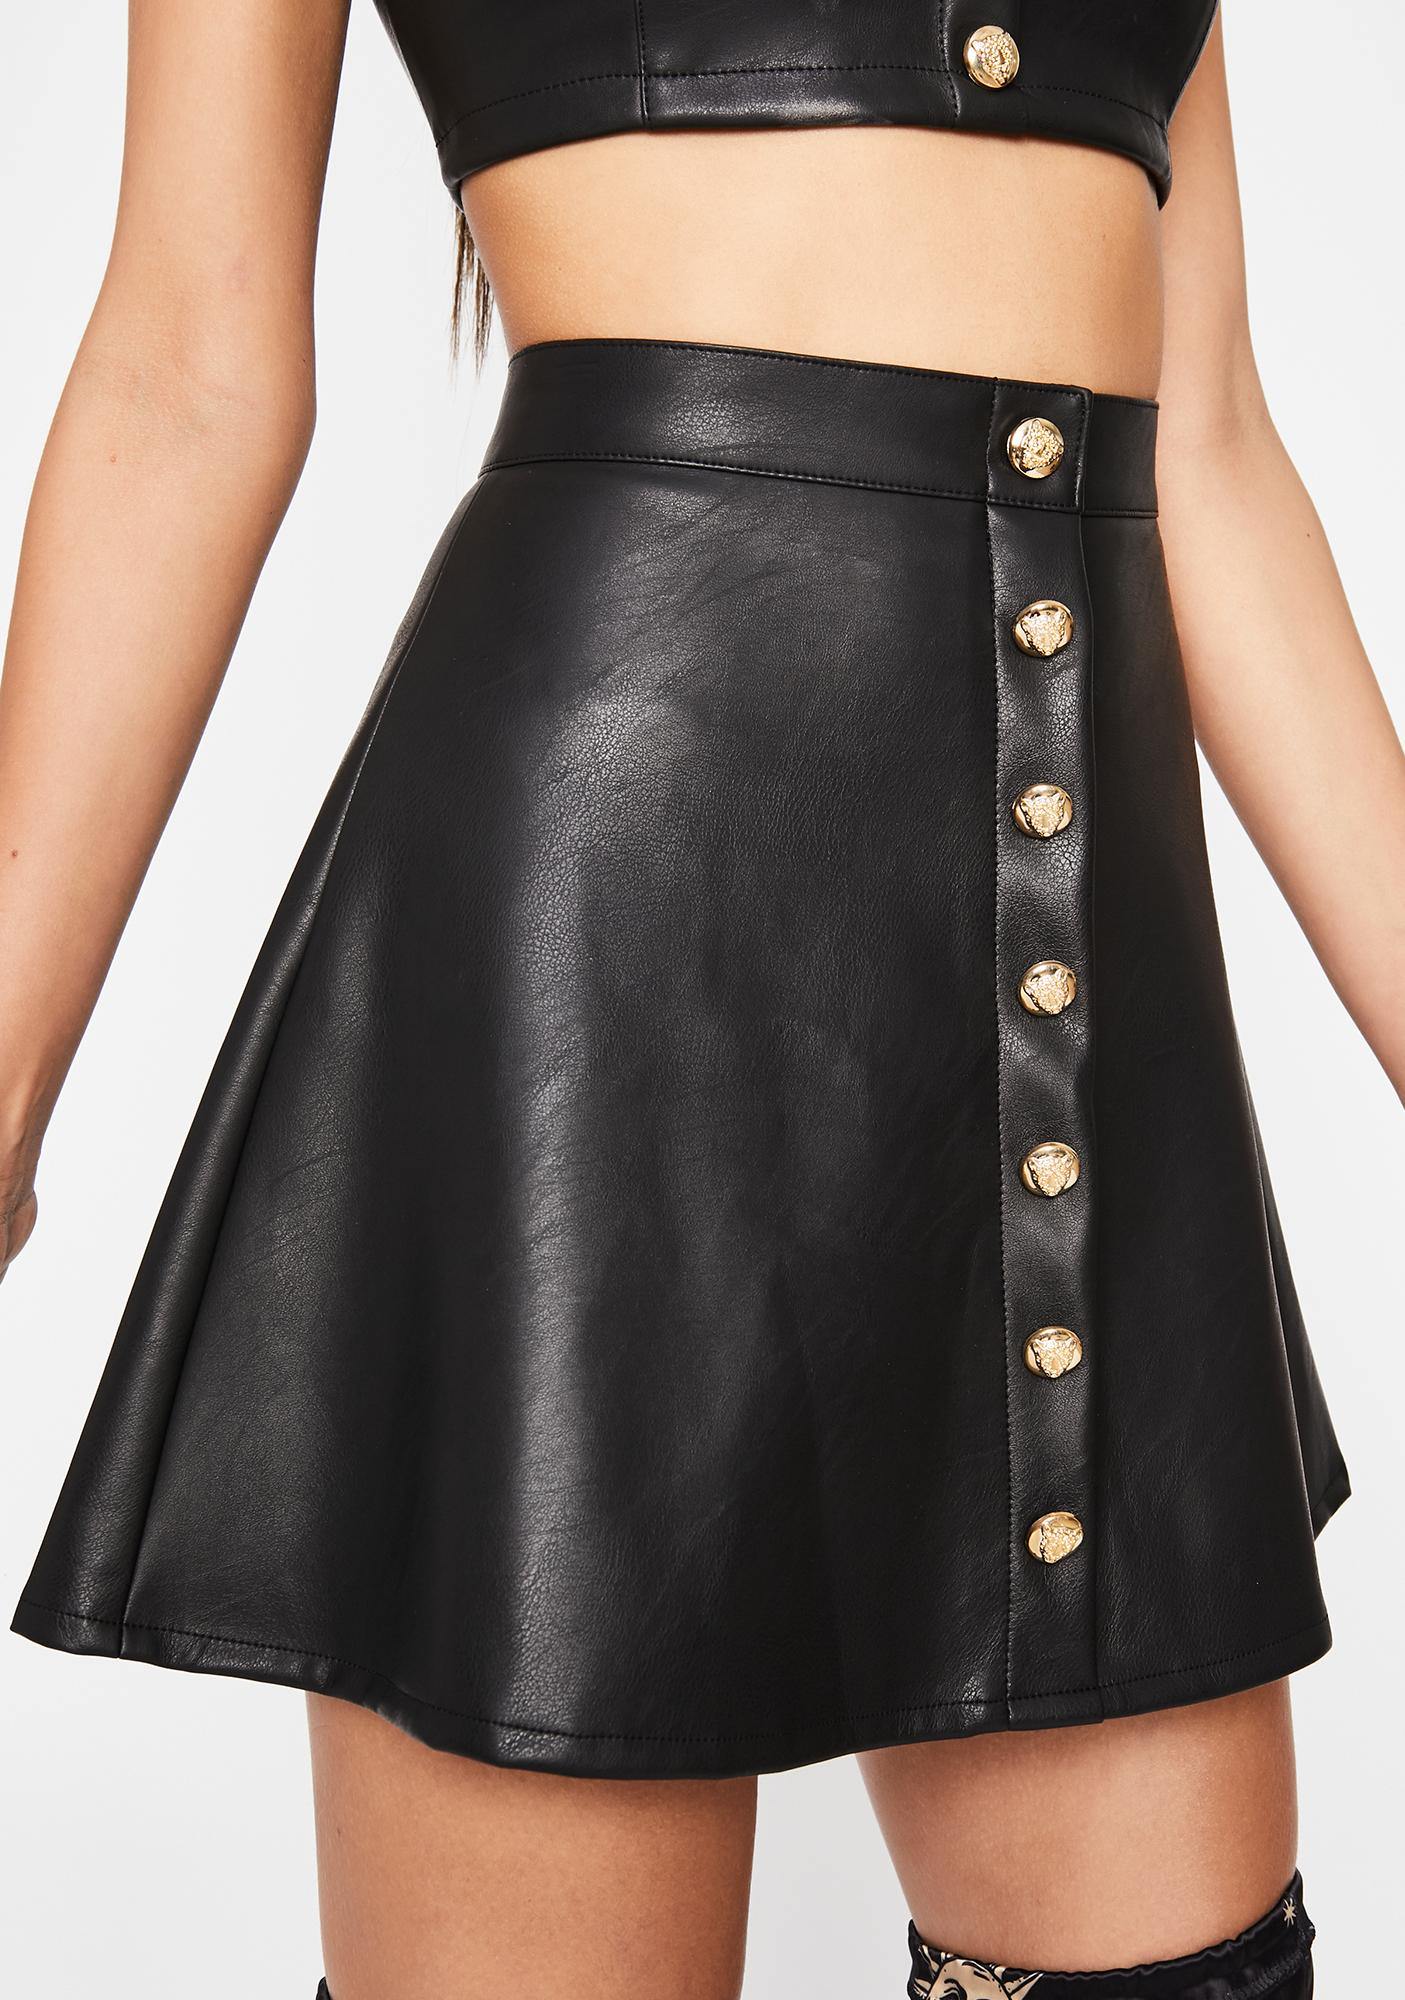 HOROSCOPEZ Lion Hearted Skater Skirt